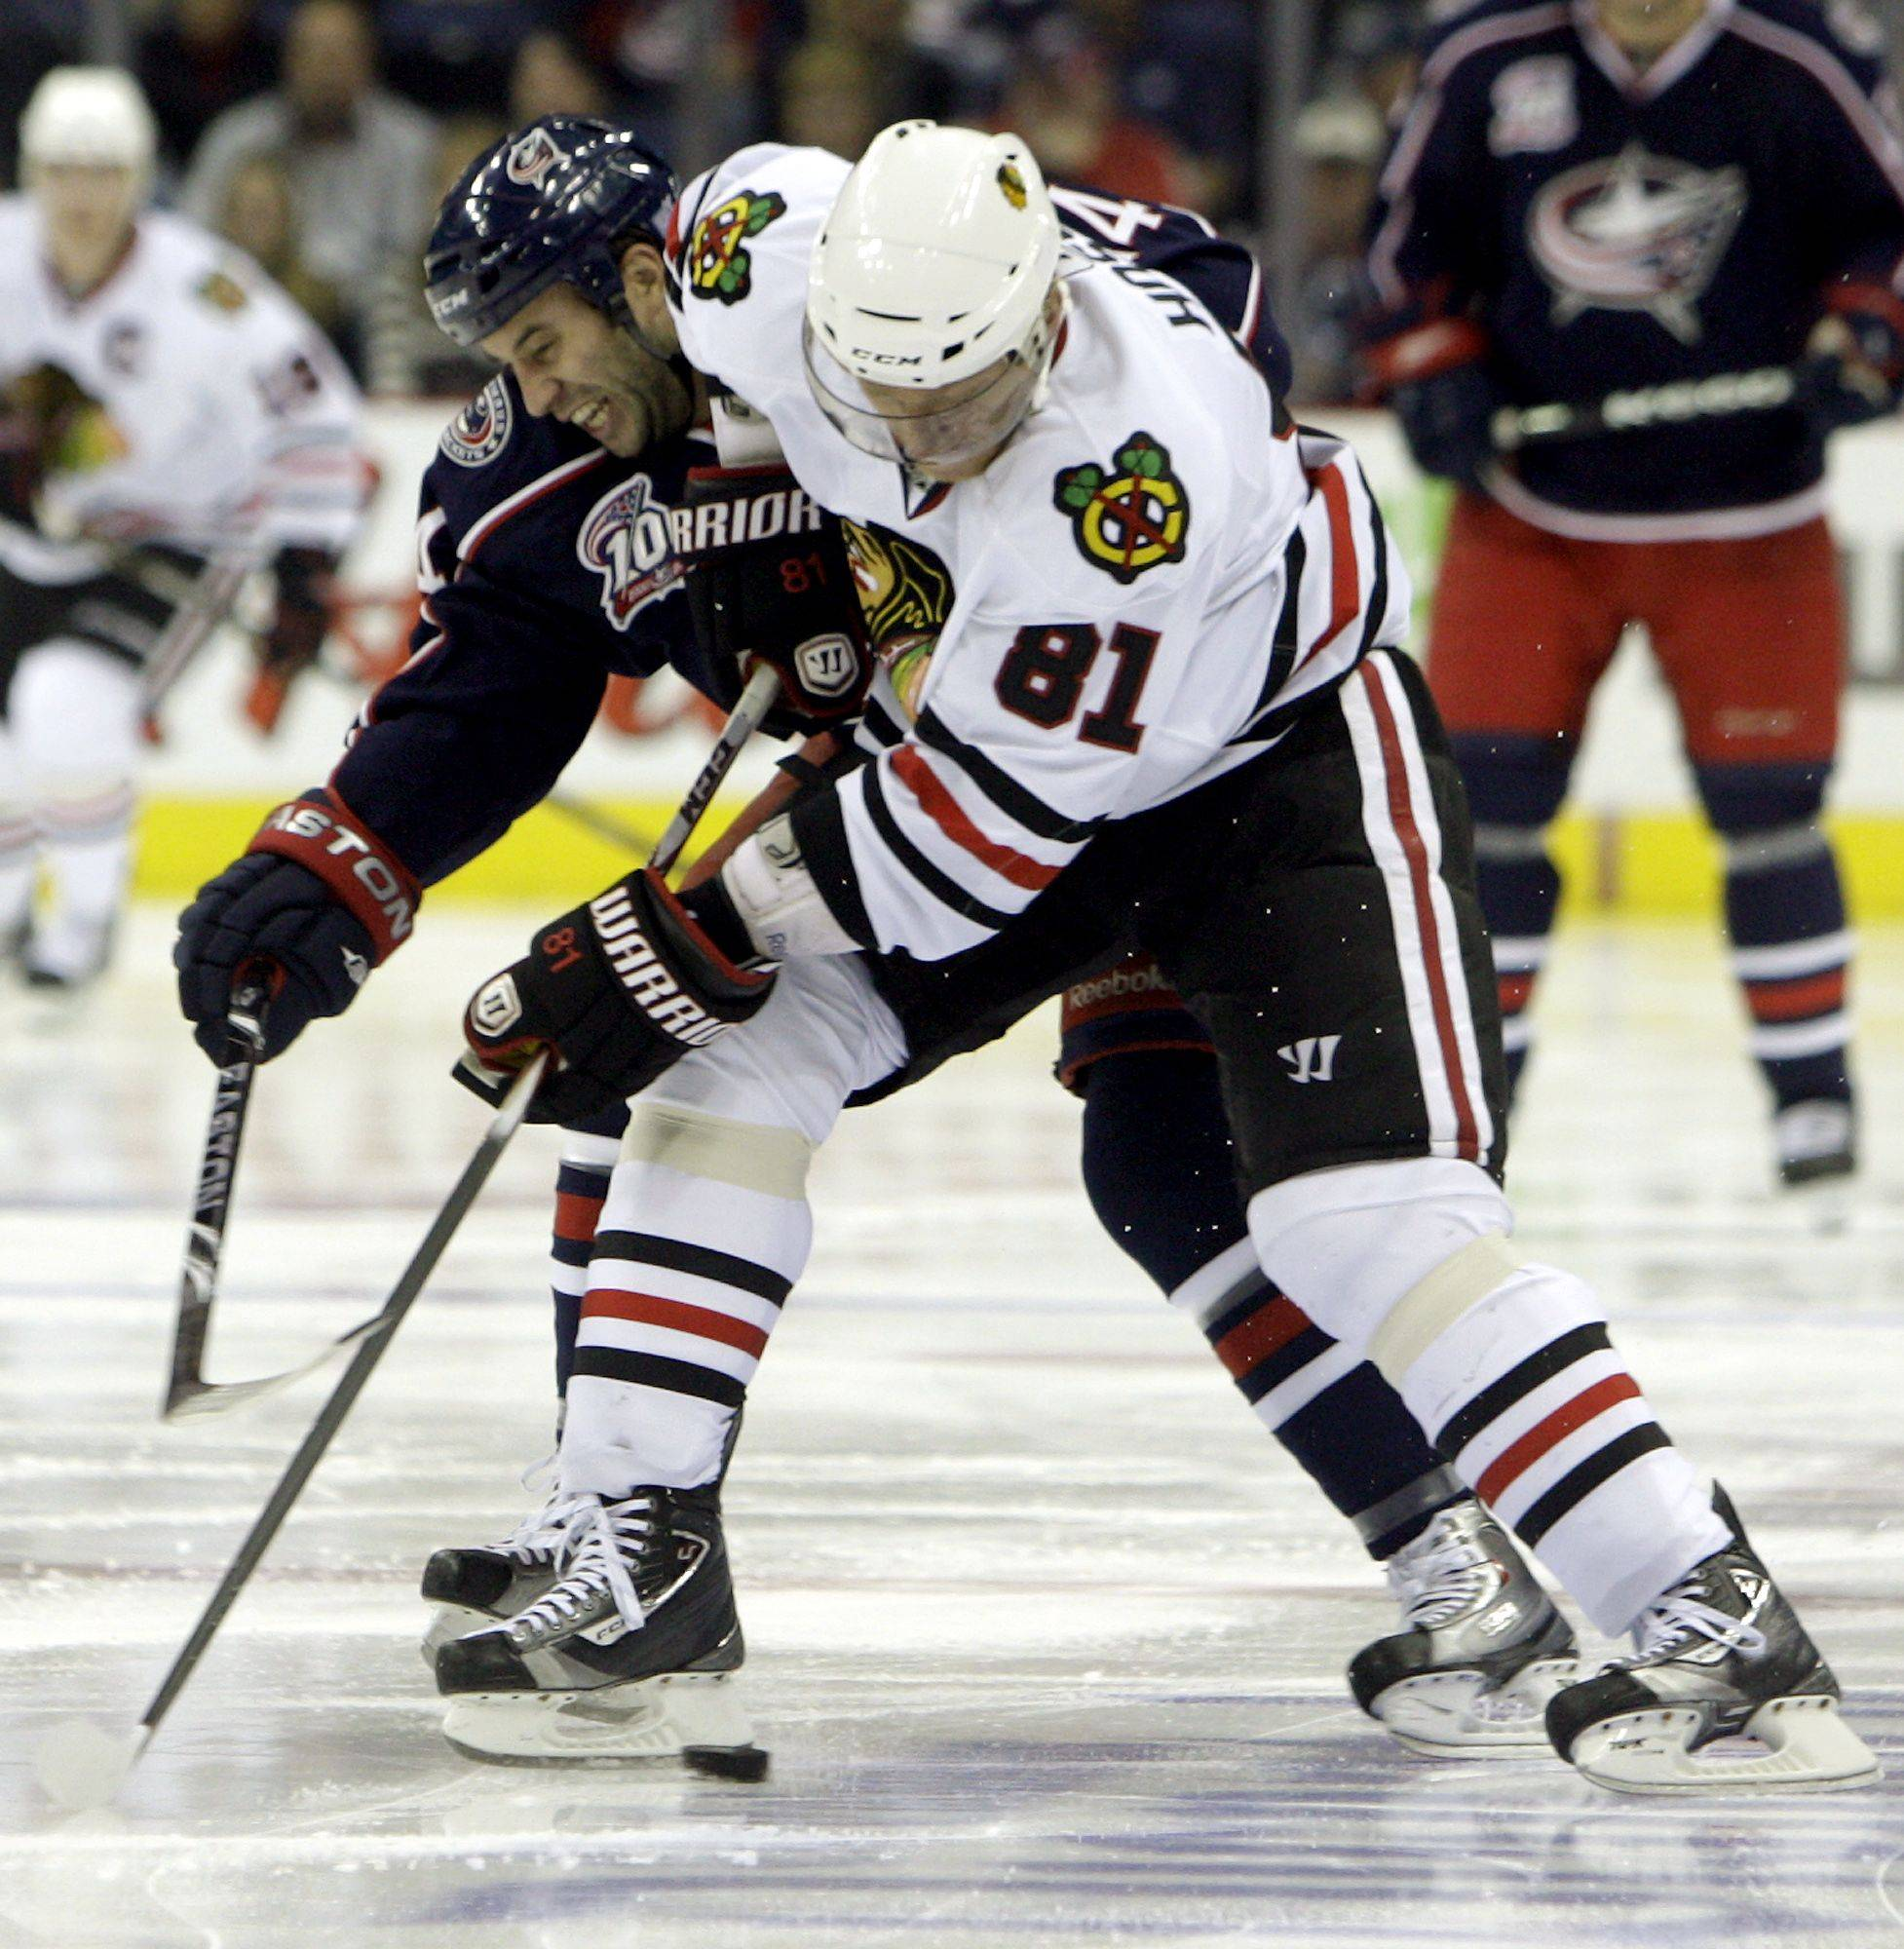 The Blackhawks will be without the services of Marian Hossa, who will be out 2-3 weeks with a lower-body injury. Hossa collided in practice Monday with teammate Nick Boynton. Hossa missed five games earlier this season.